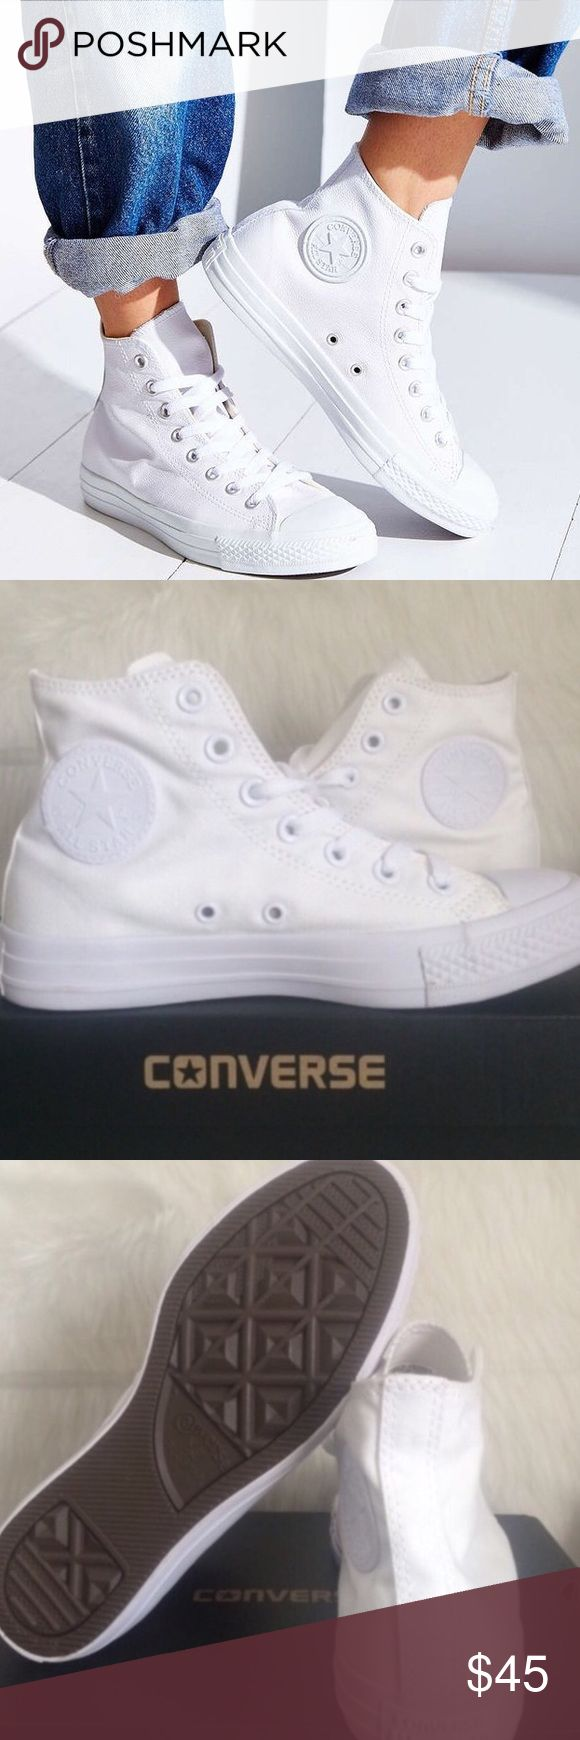 CONVERSE MONOCHROME ALL WHITE WOMENS SIZE 7.5 All white converse Chuck taylors. Brand new in box. Womens size 7.5. Converse Shoes Sneakers